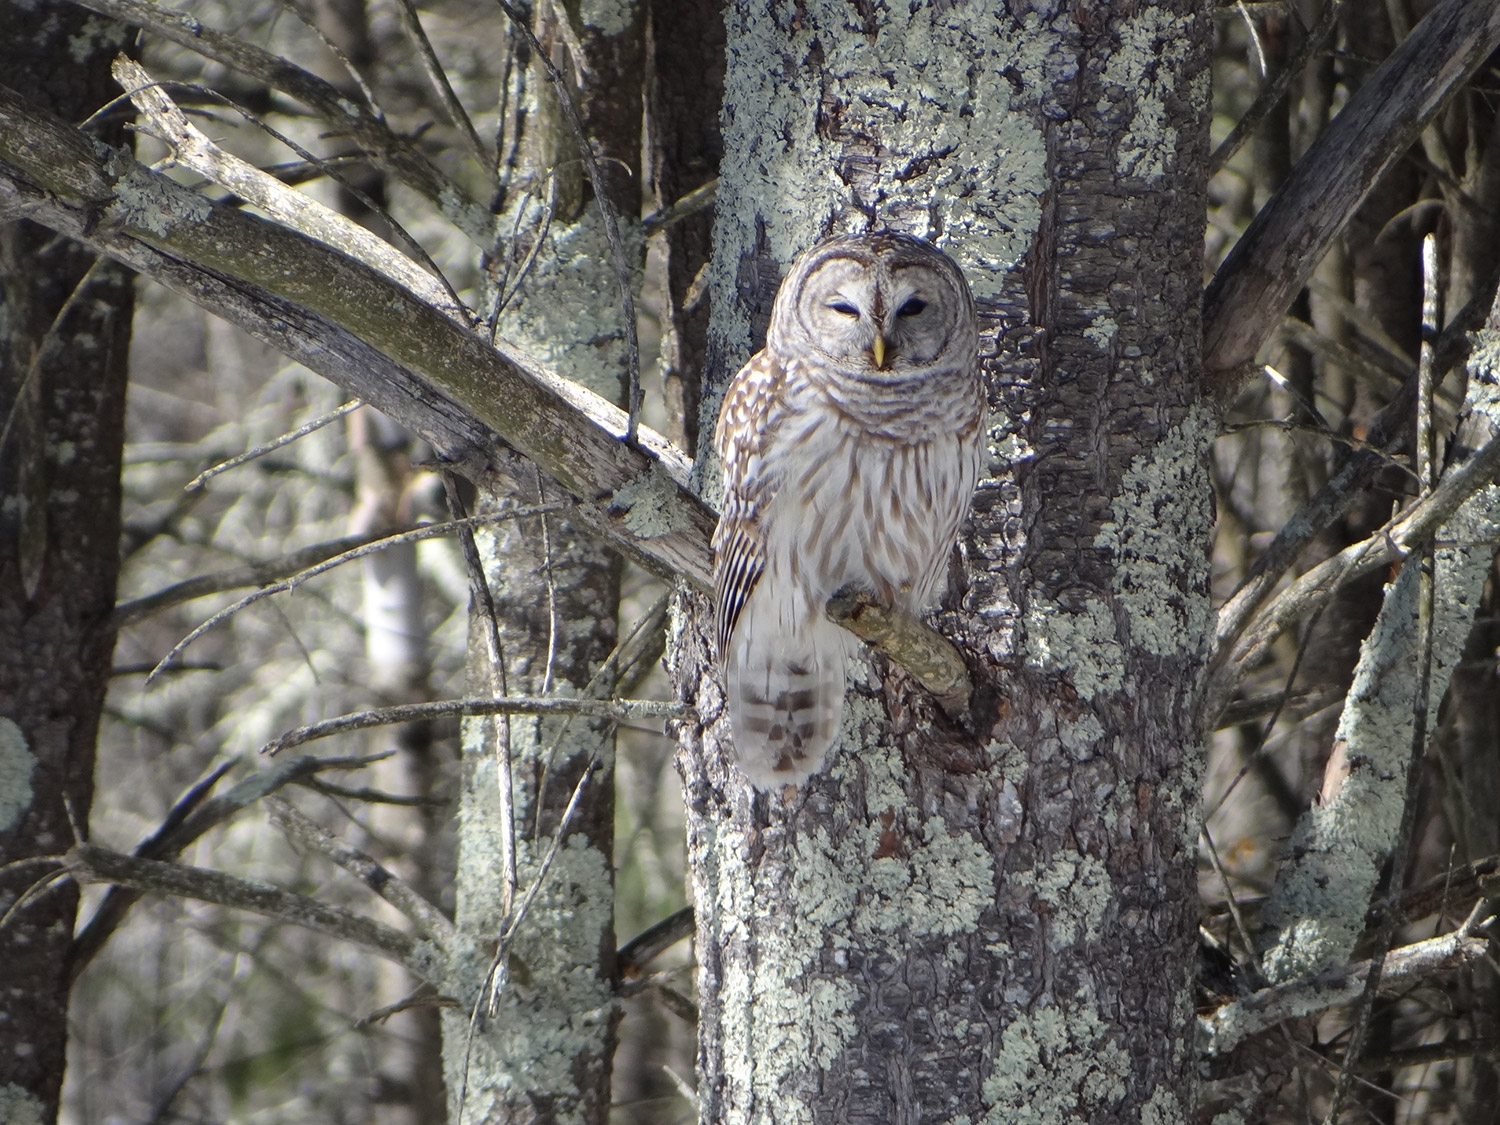 Alexander Spiller of Windham came home from school and spotted this owl in the tree, only after he thought he saw the tree move. It took Alex's mom and sister 10 minutes to spot the owl.